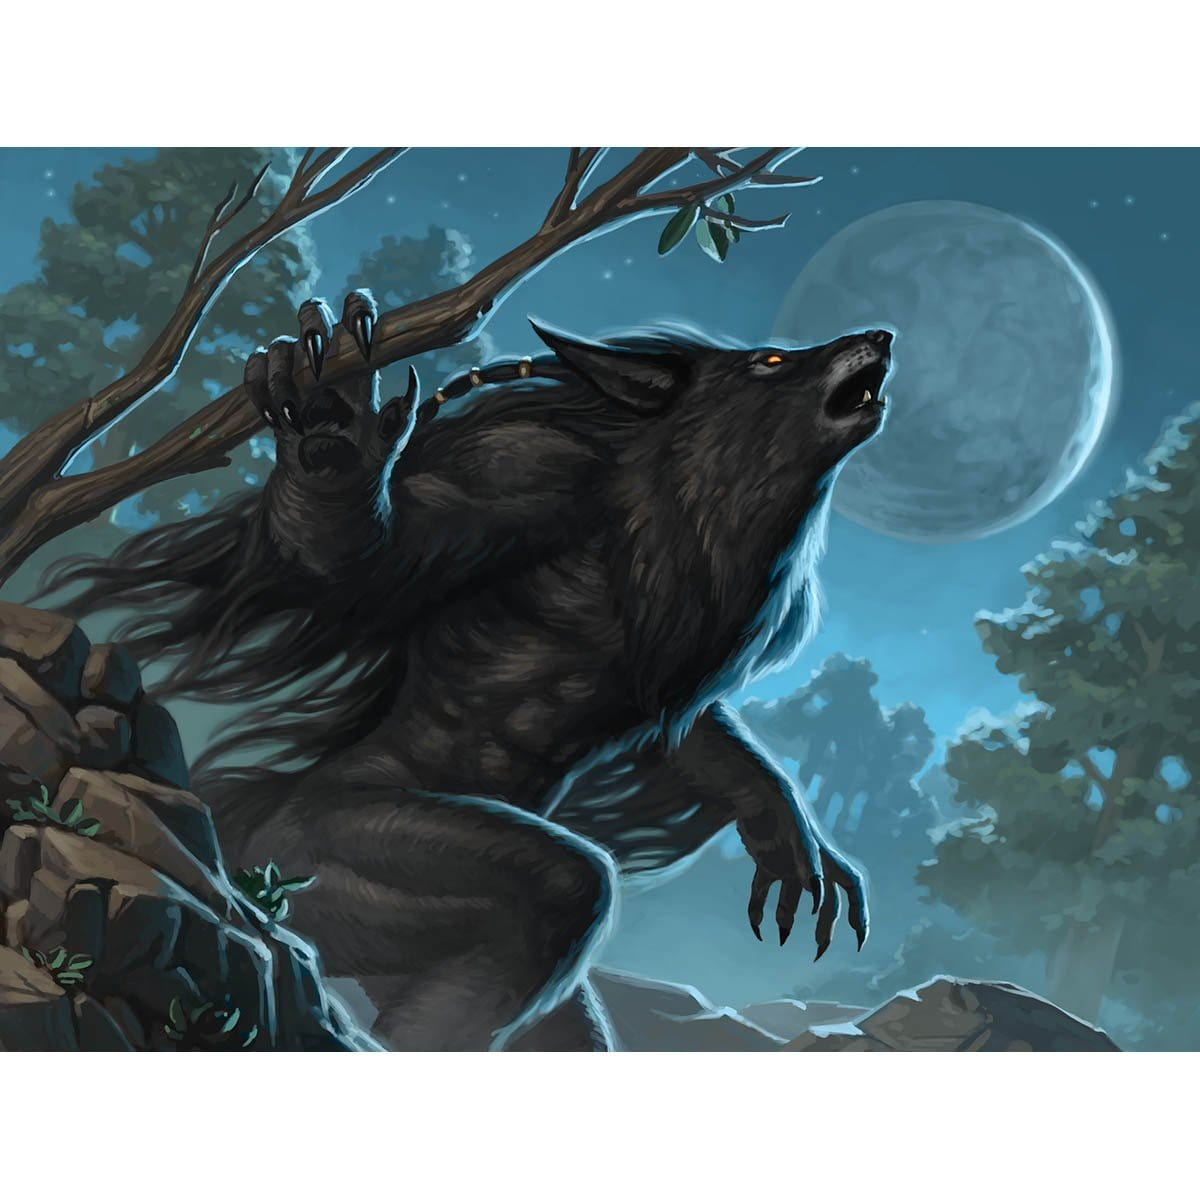 Krallenhorde Howler Print - Print - Original Magic Art - Accessories for Magic the Gathering and other card games